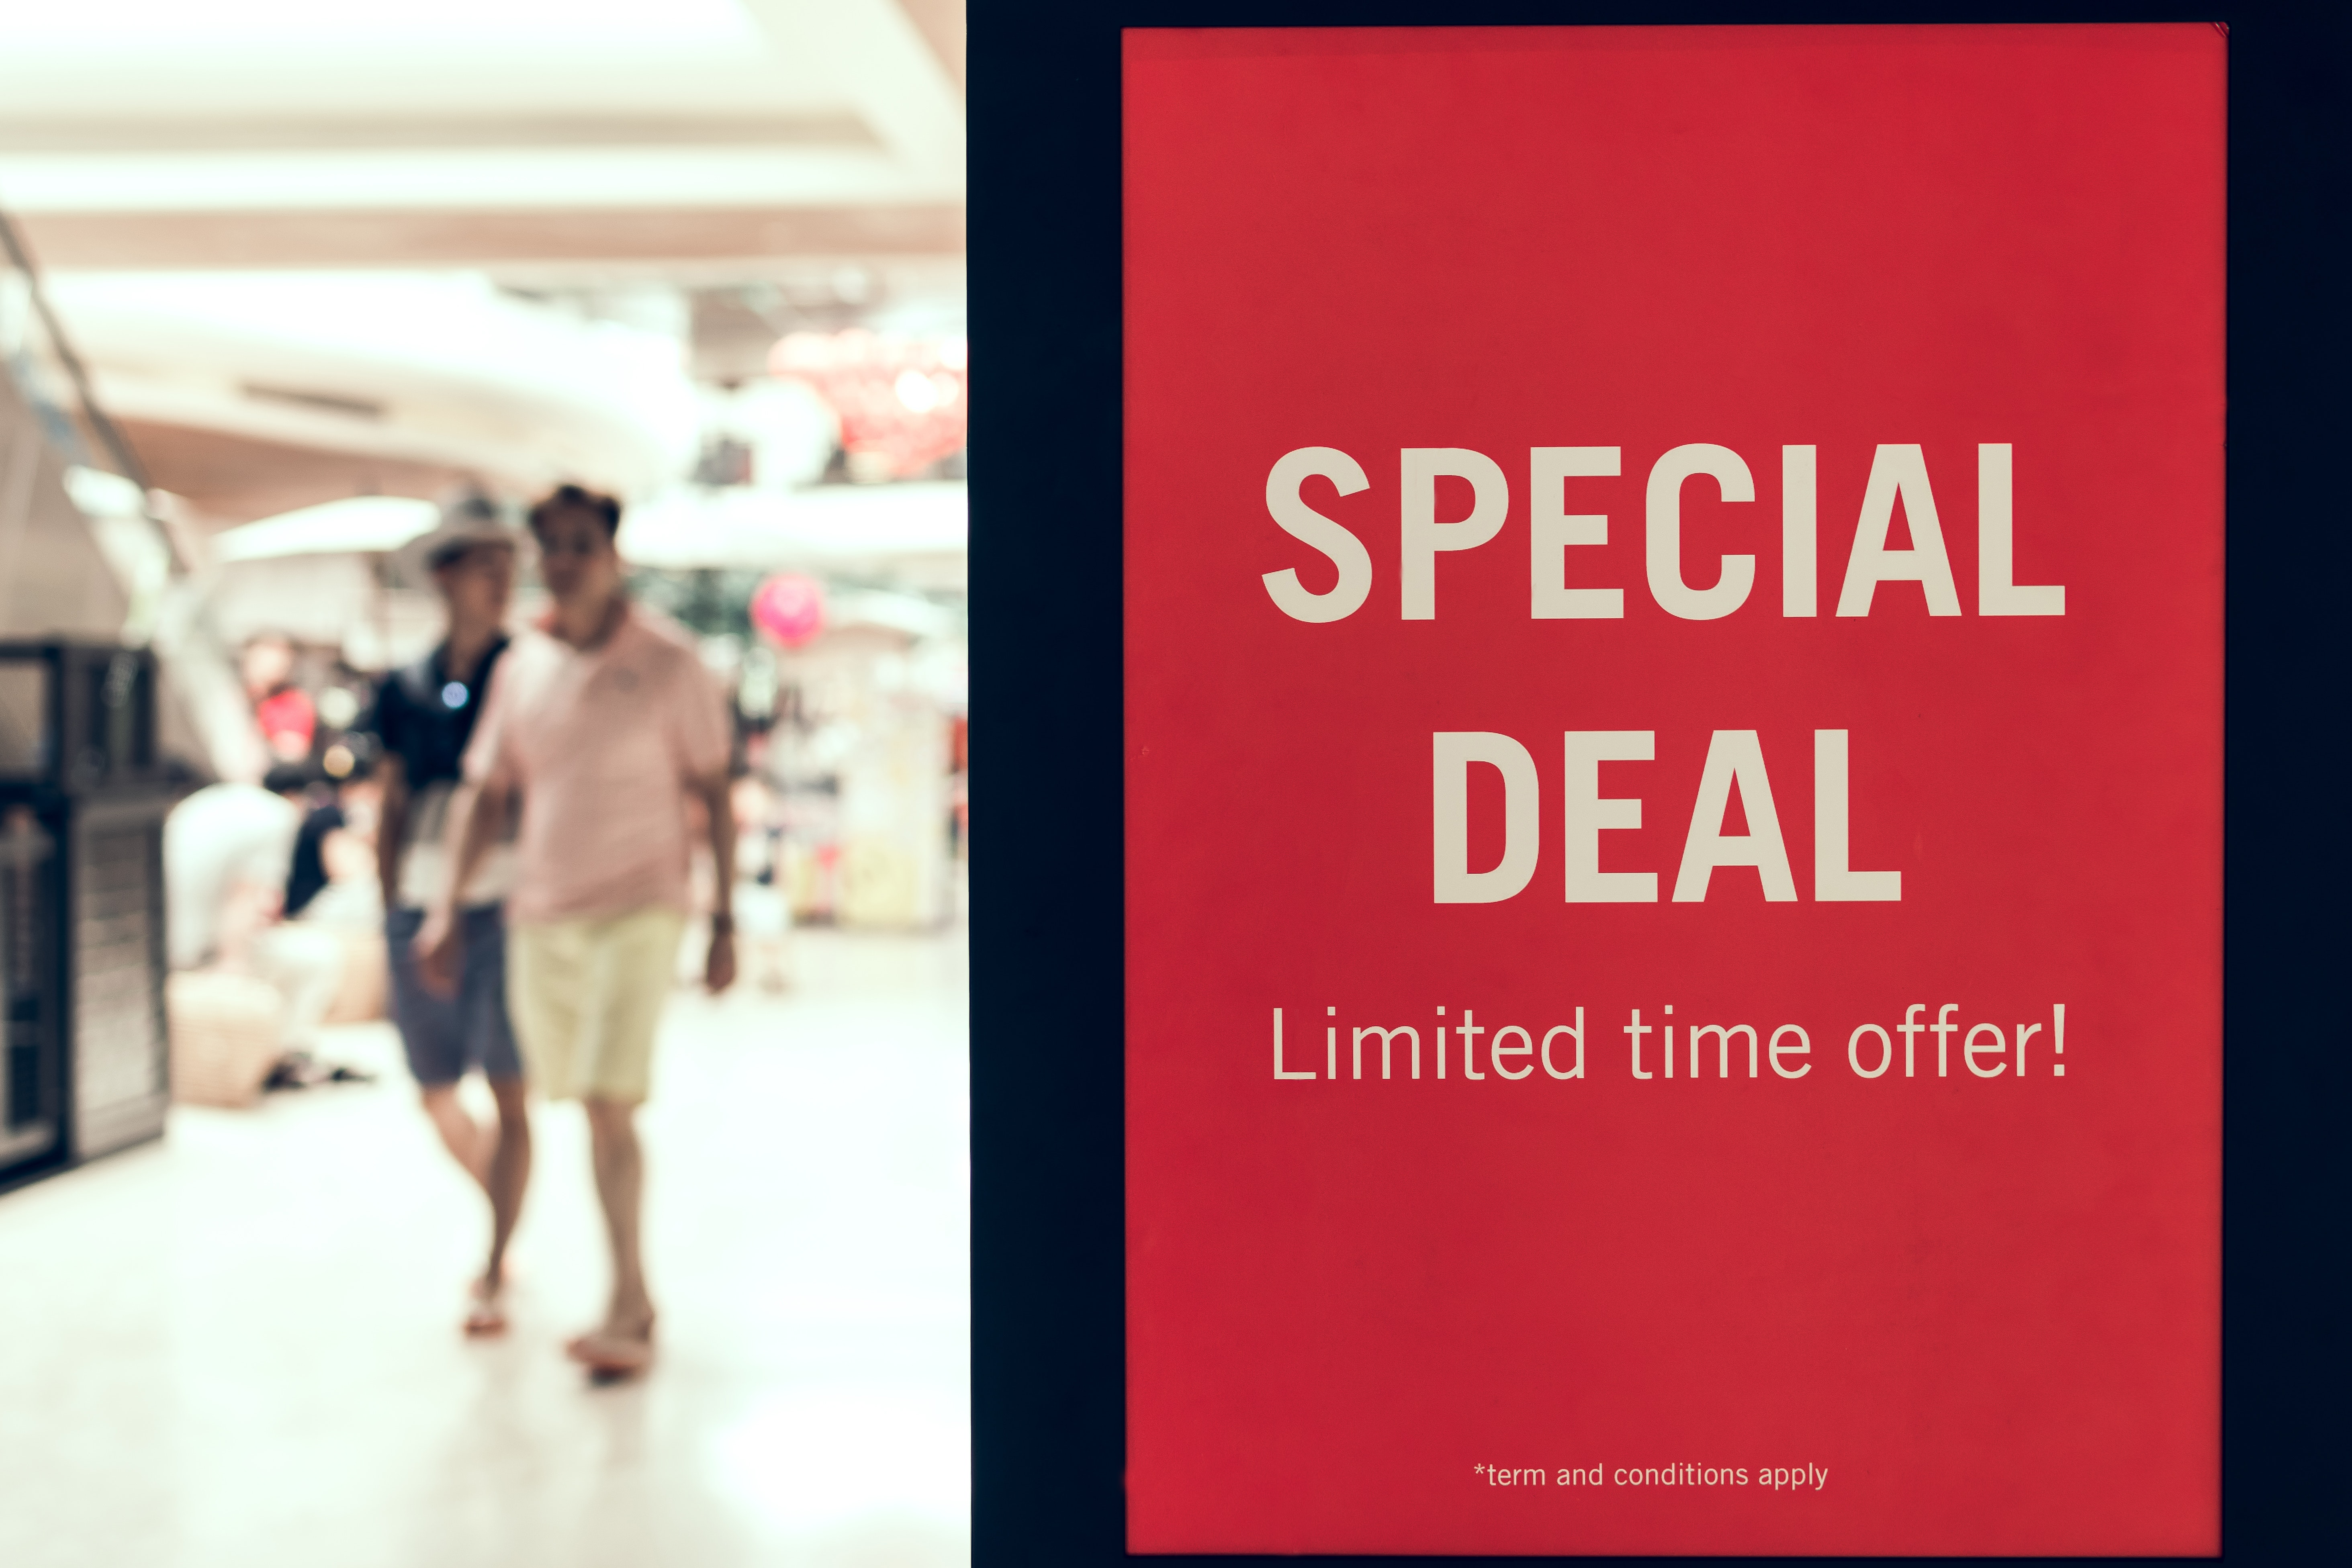 adult-advertisement-airport-1114376